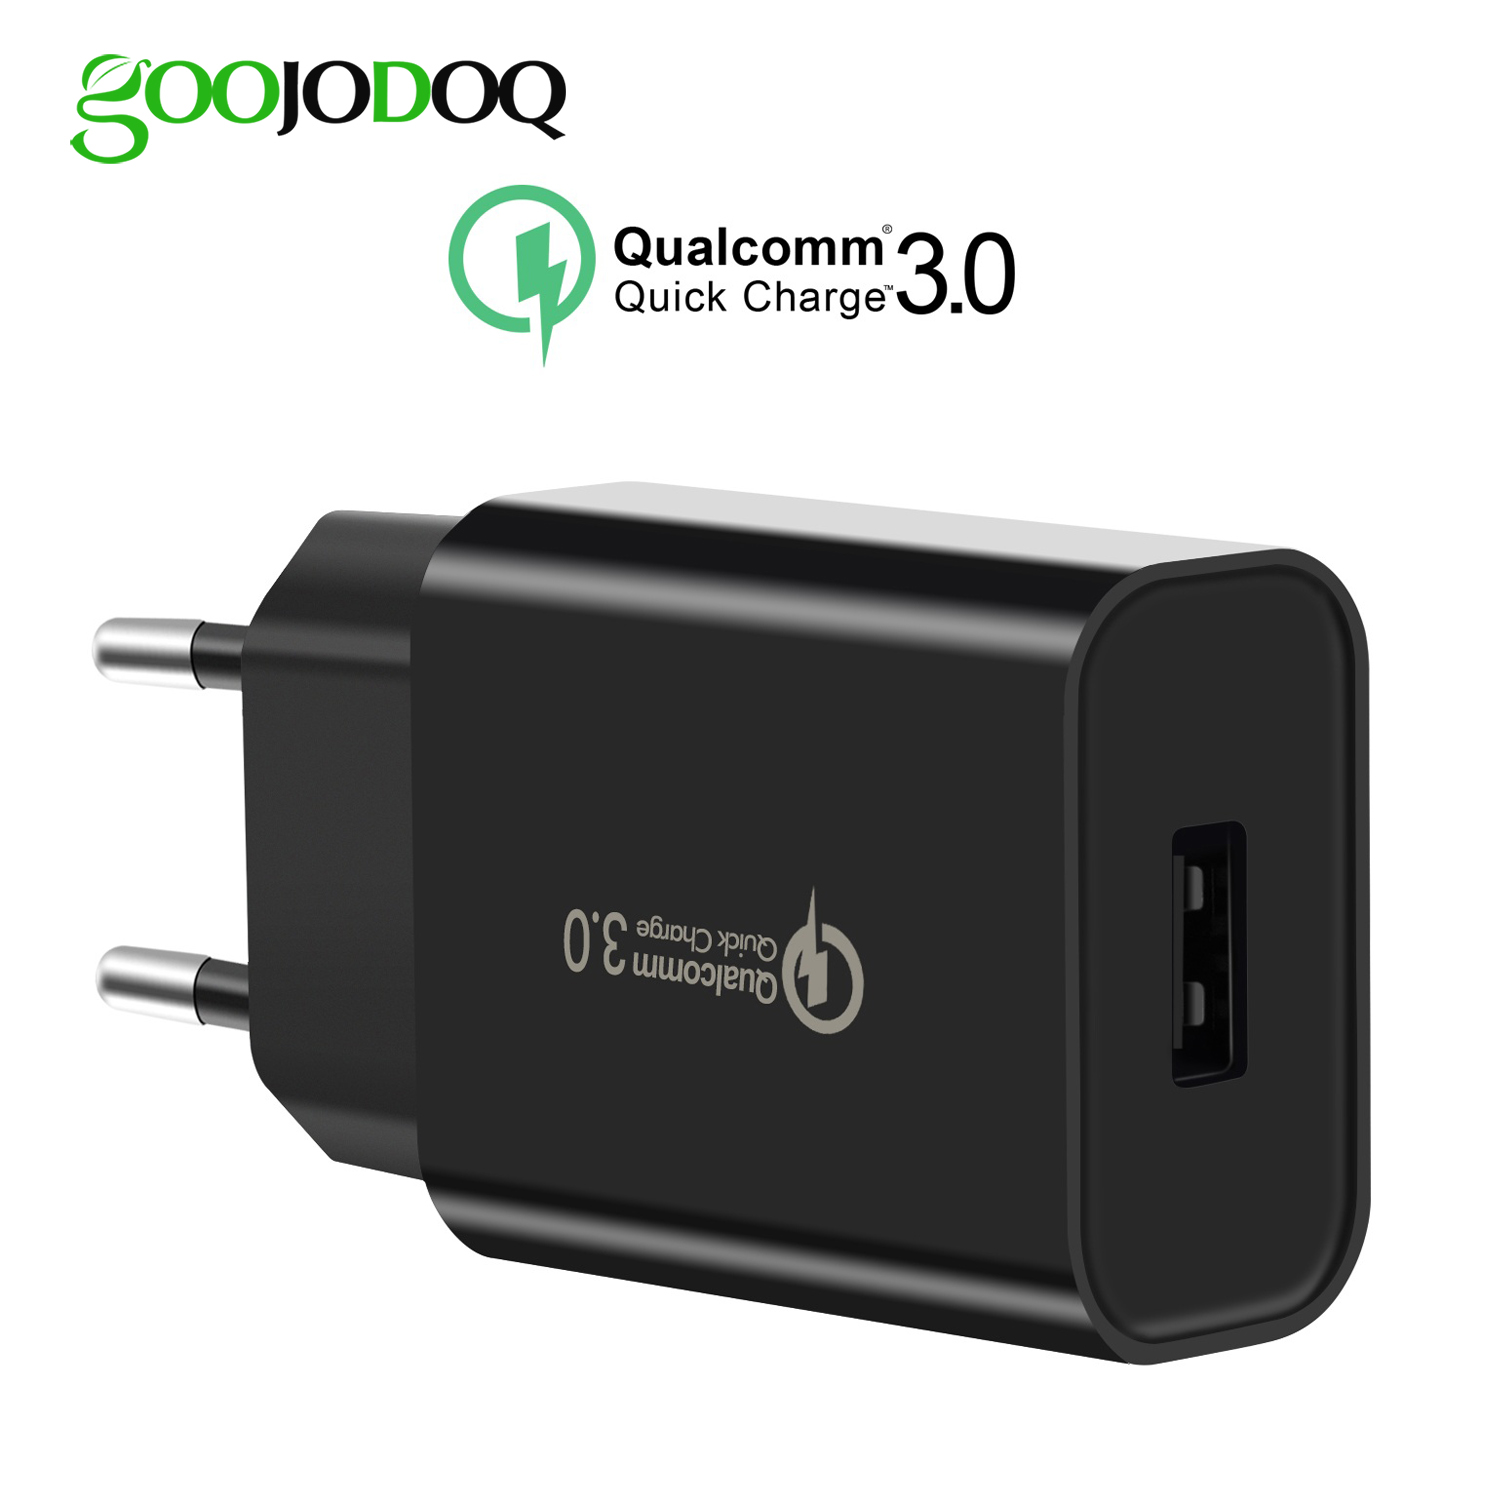 Snabbladdning QC3.0 18W Universal EU / USA Plug USB Power Portable Home Wall Travel Power Charging Adapter För iPhone Samsung Xiaomi